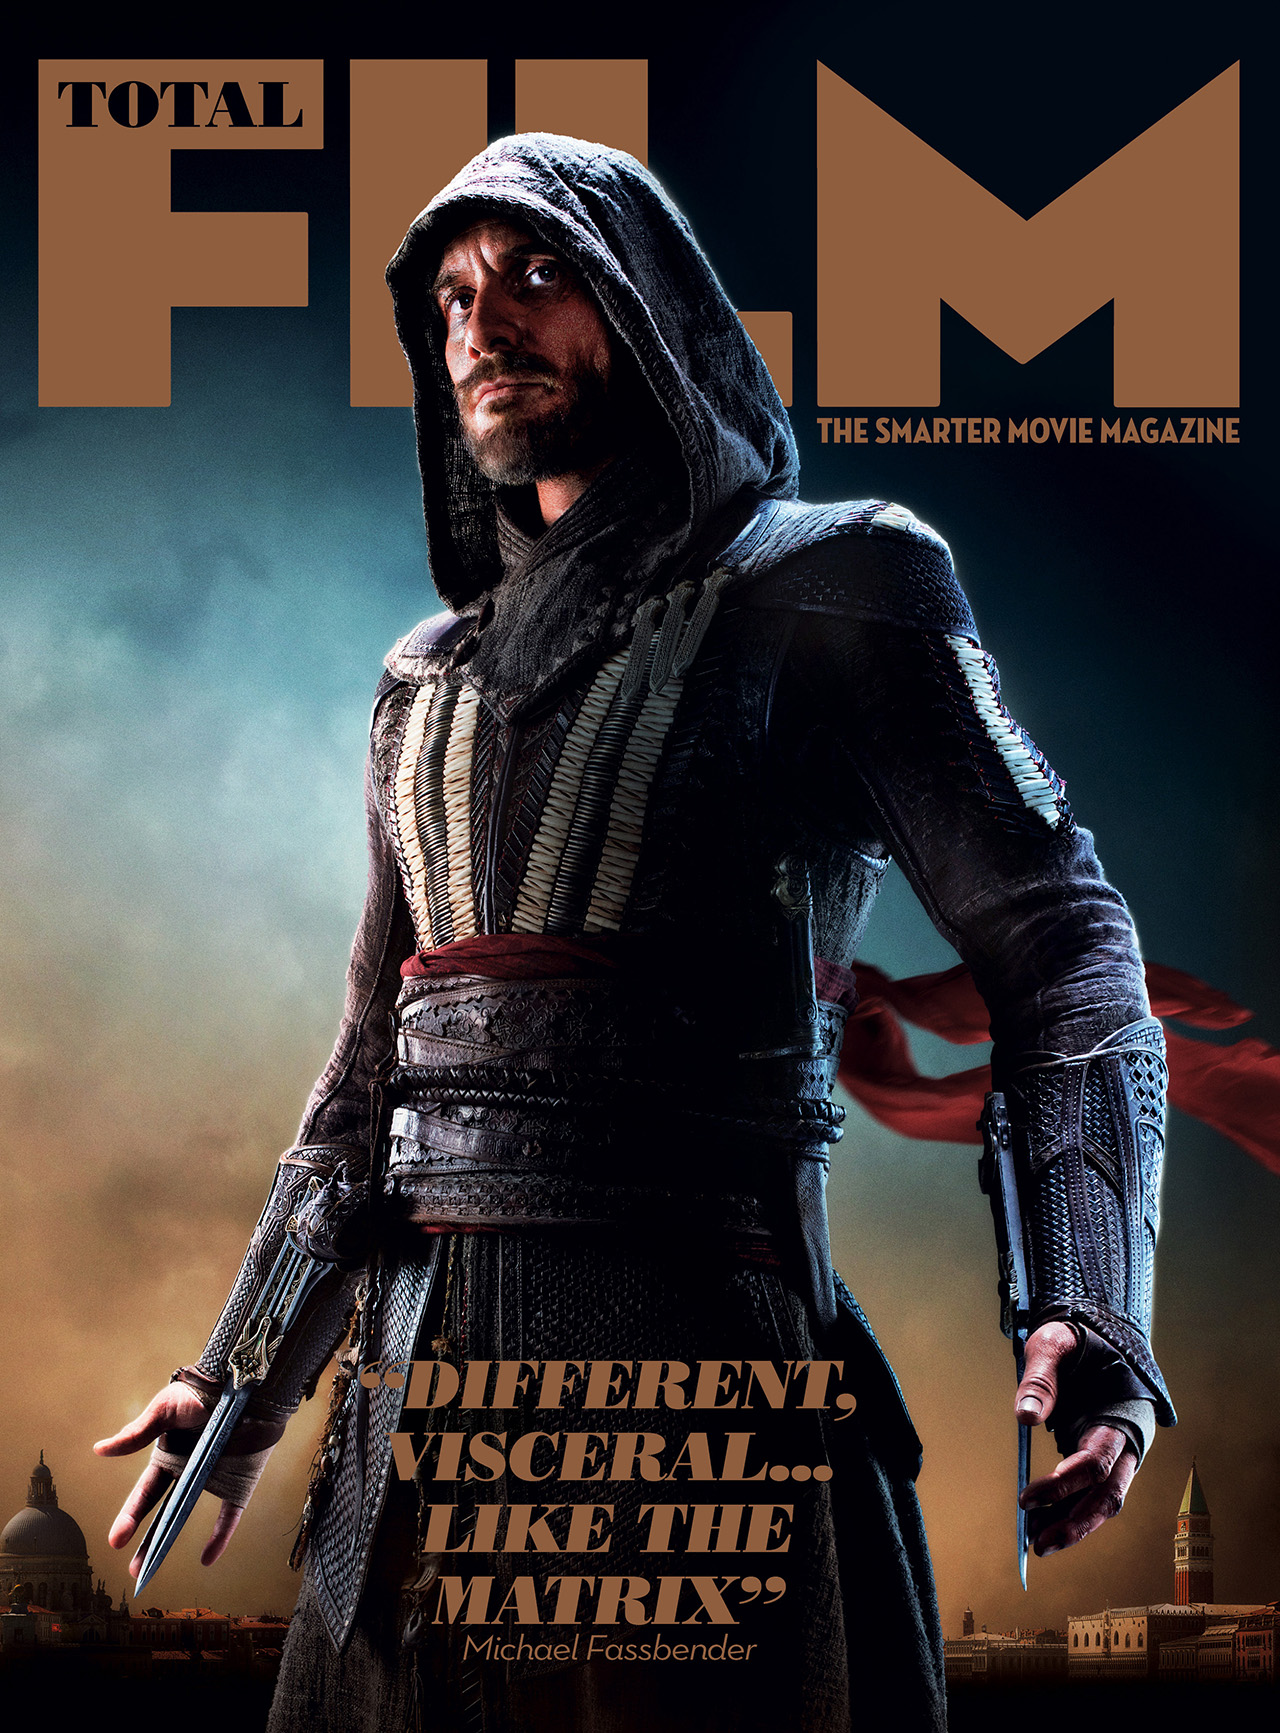 Assassin's Creed Movie Images